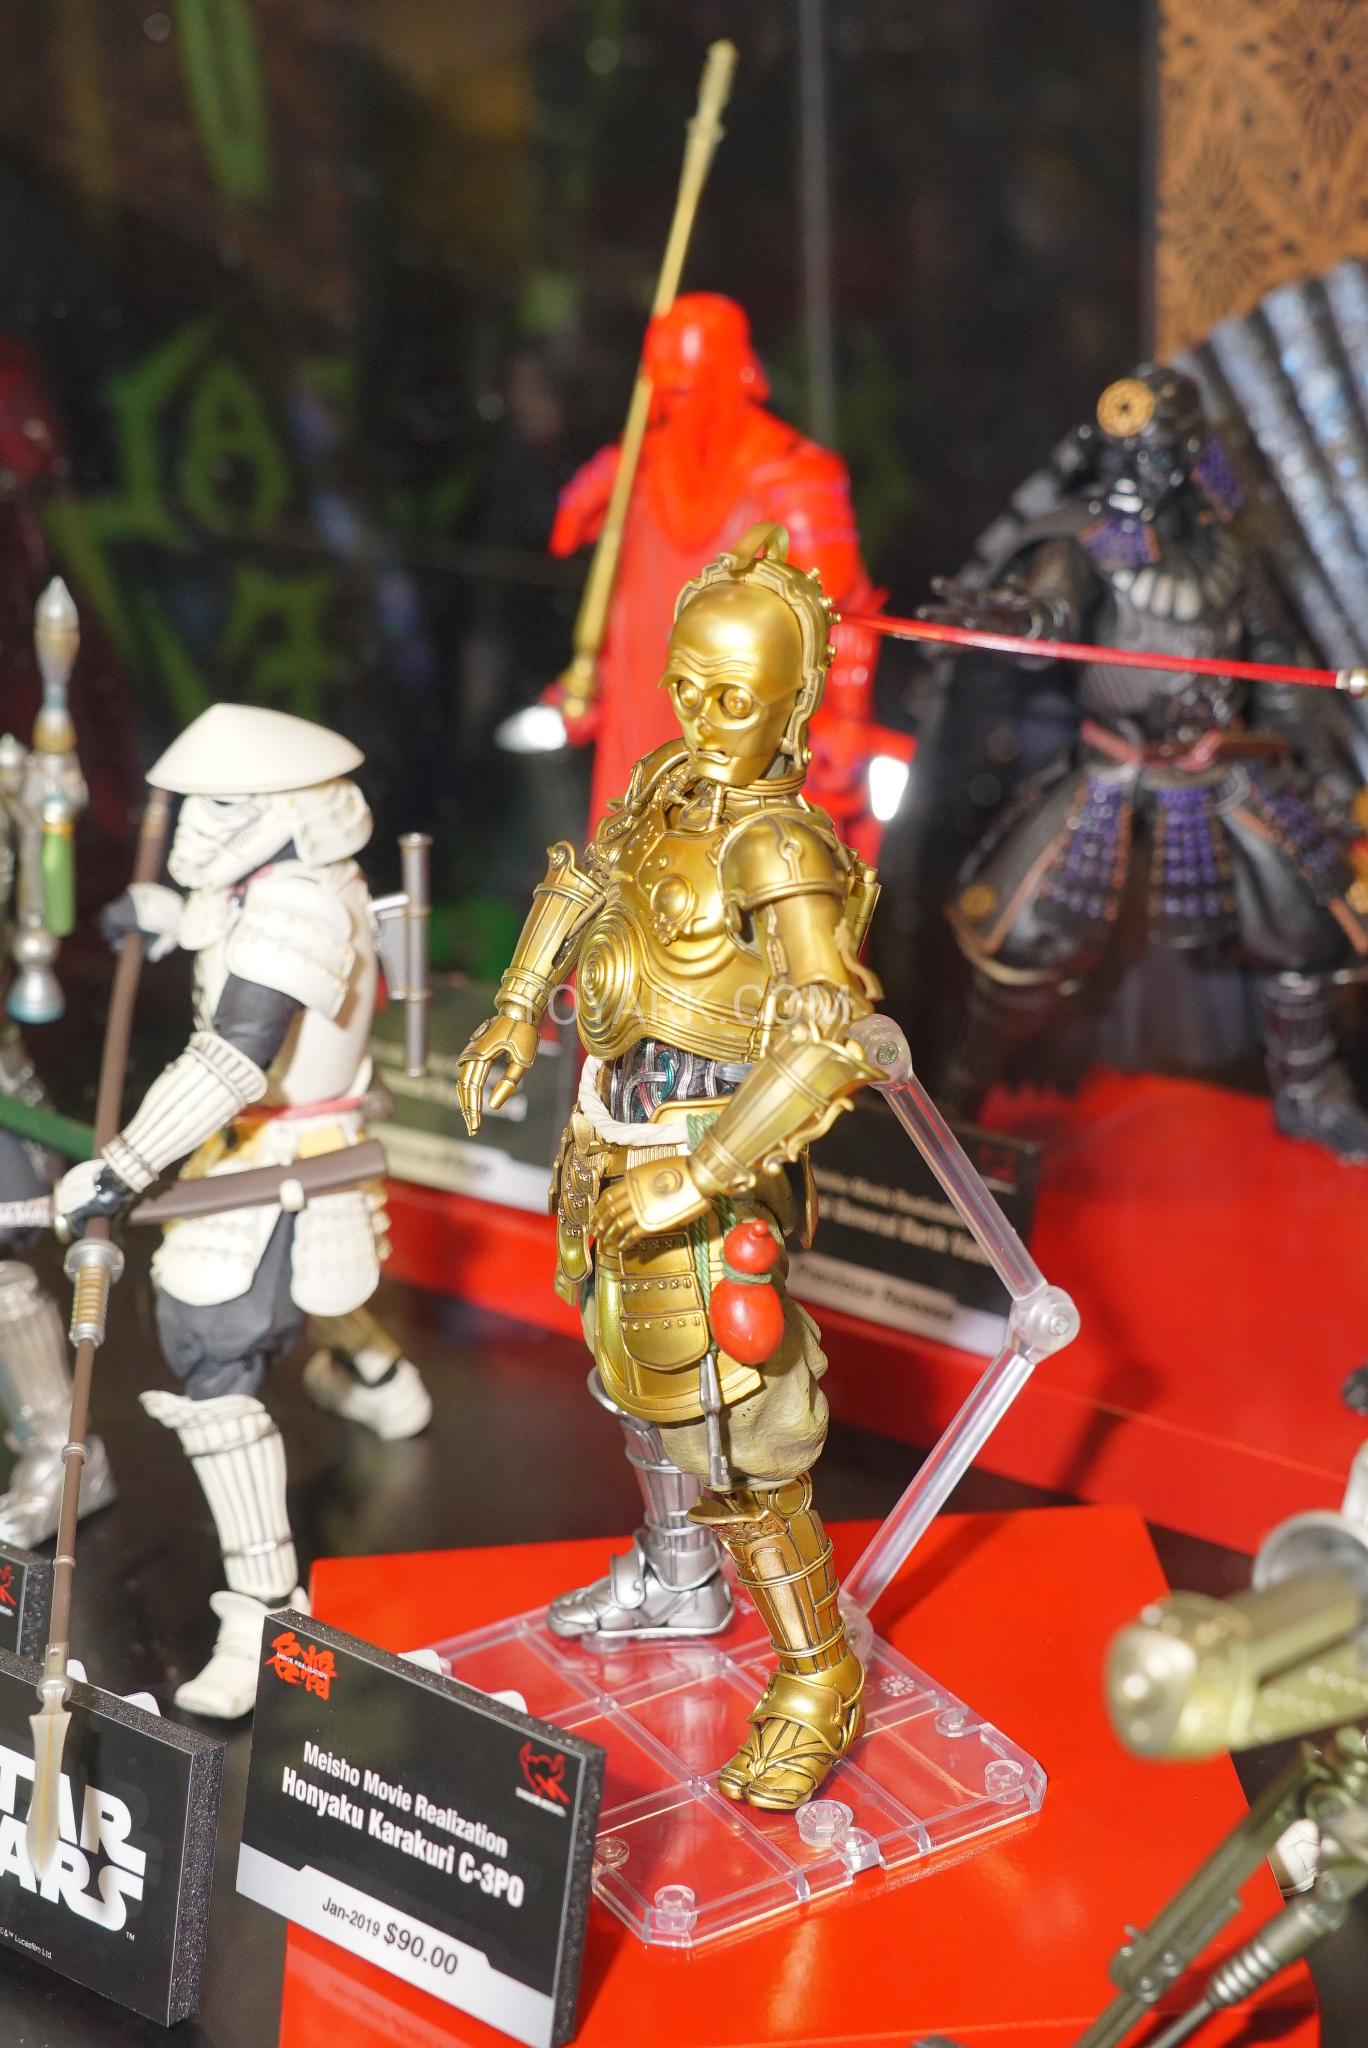 NEW YORK COMIC CON 2018 NYCC-2018-Tamashii-Nations-Star-Wars-008